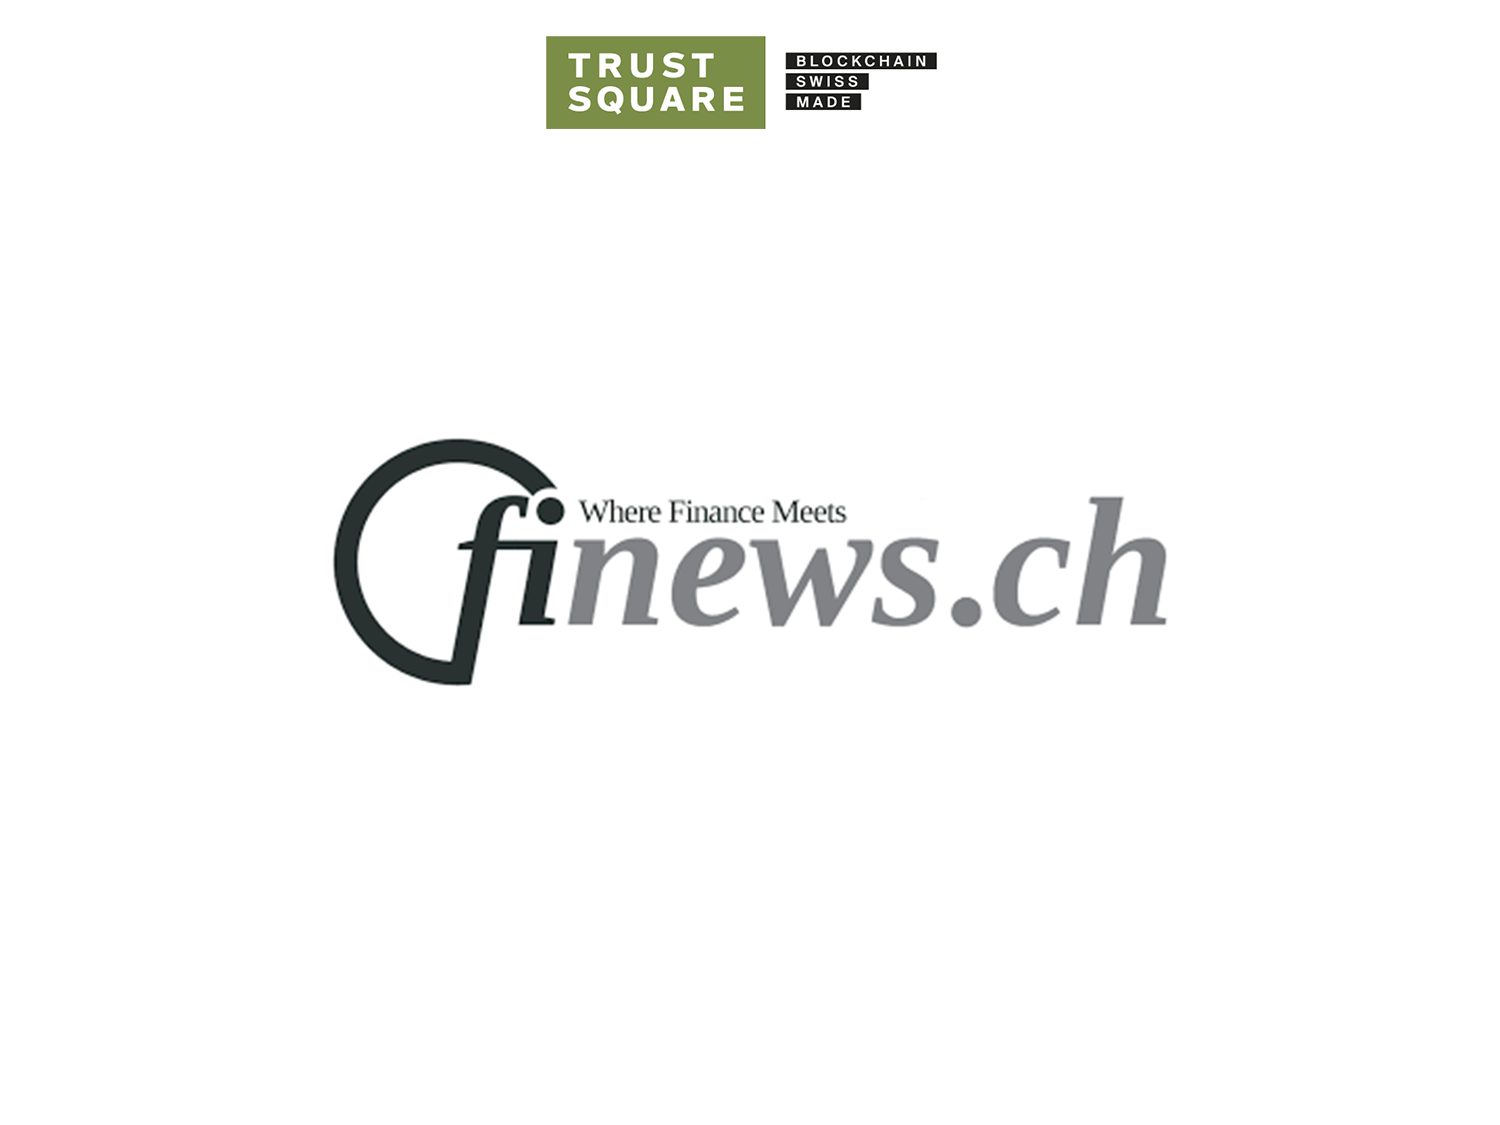 Finews.ch and Trust Square Logo